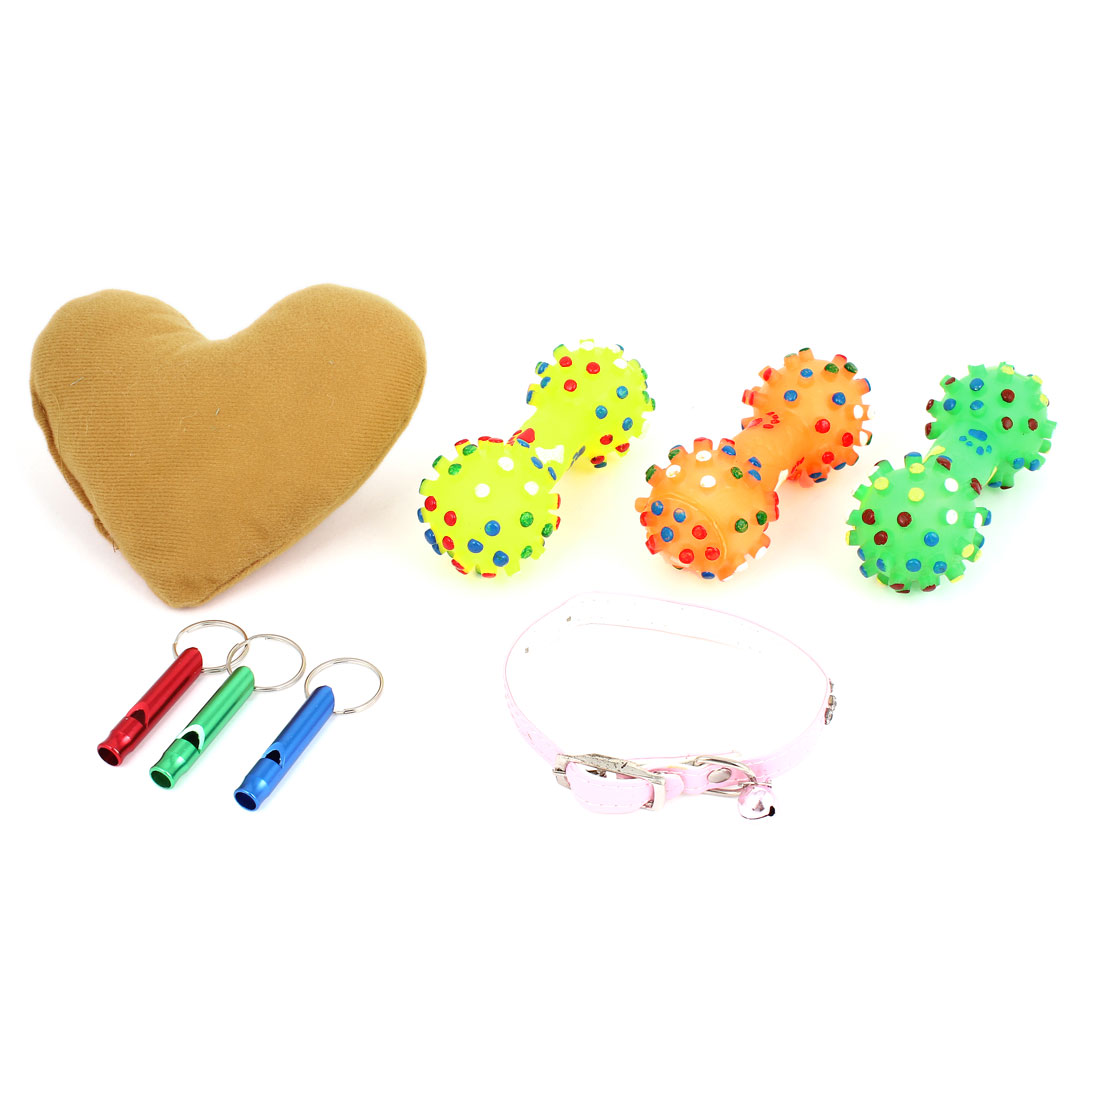 Whistle Necklace Neck Pillow Squeaky Chewing Toy 8 in 1 Set for Pet Dog Doggy